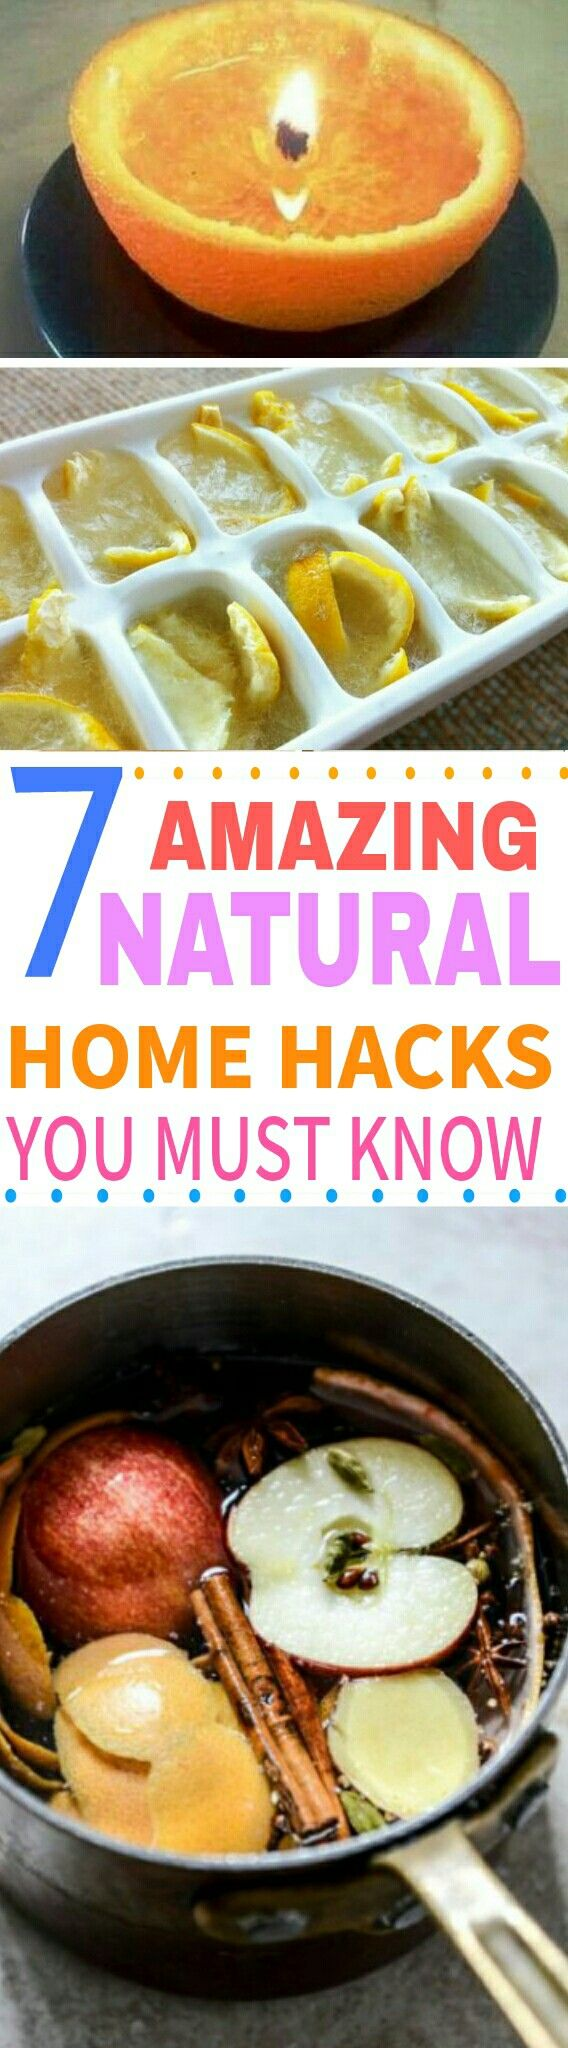 Natural Diy Ways To Make Your House Smell Amazing All The Time Brilliant Scents And Clever Keep Fresh